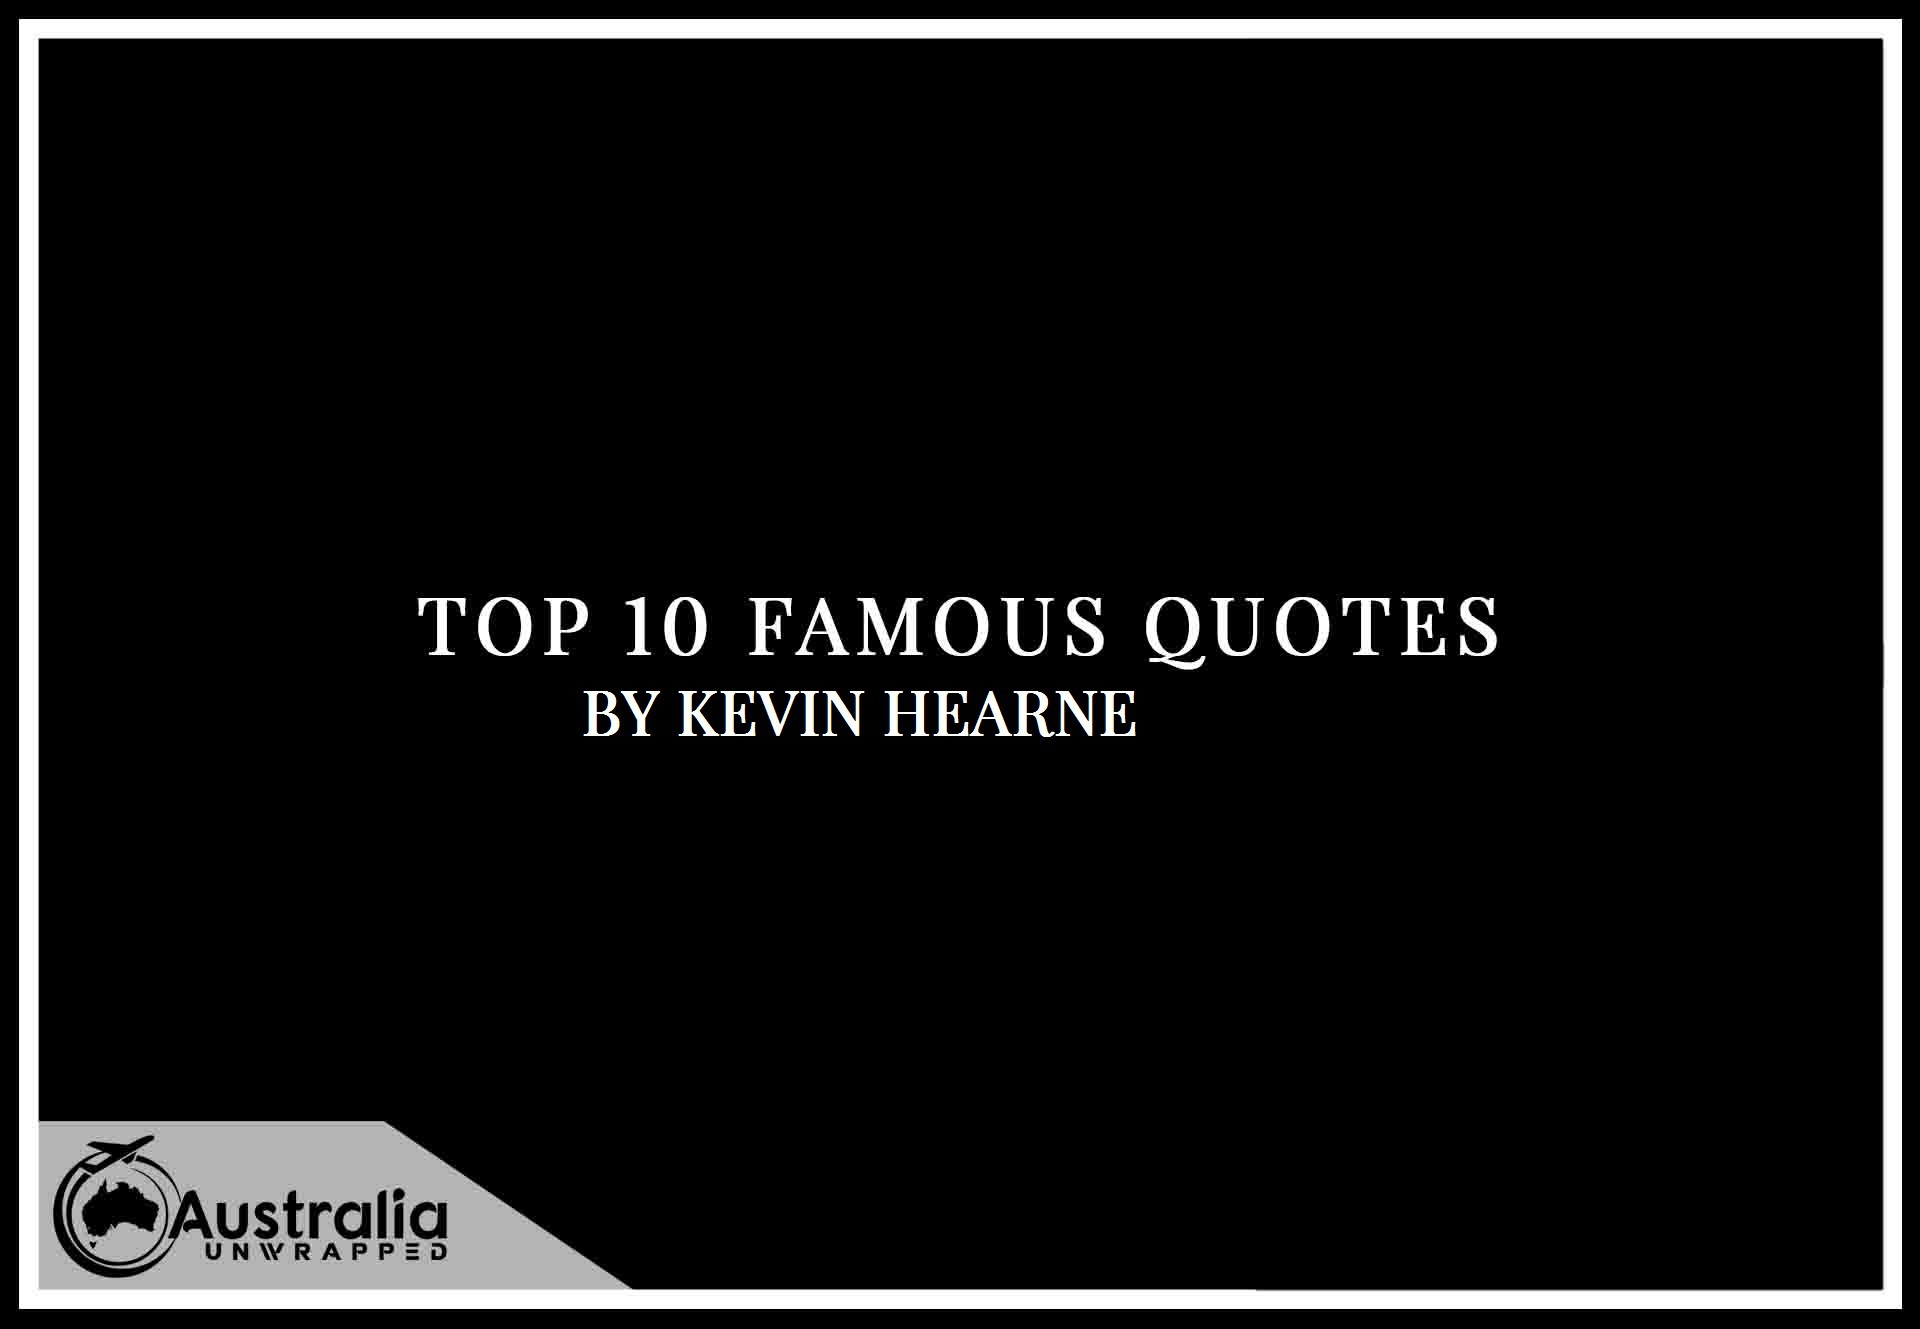 Kevin Hearne's Top 10 Popular and Famous Quotes